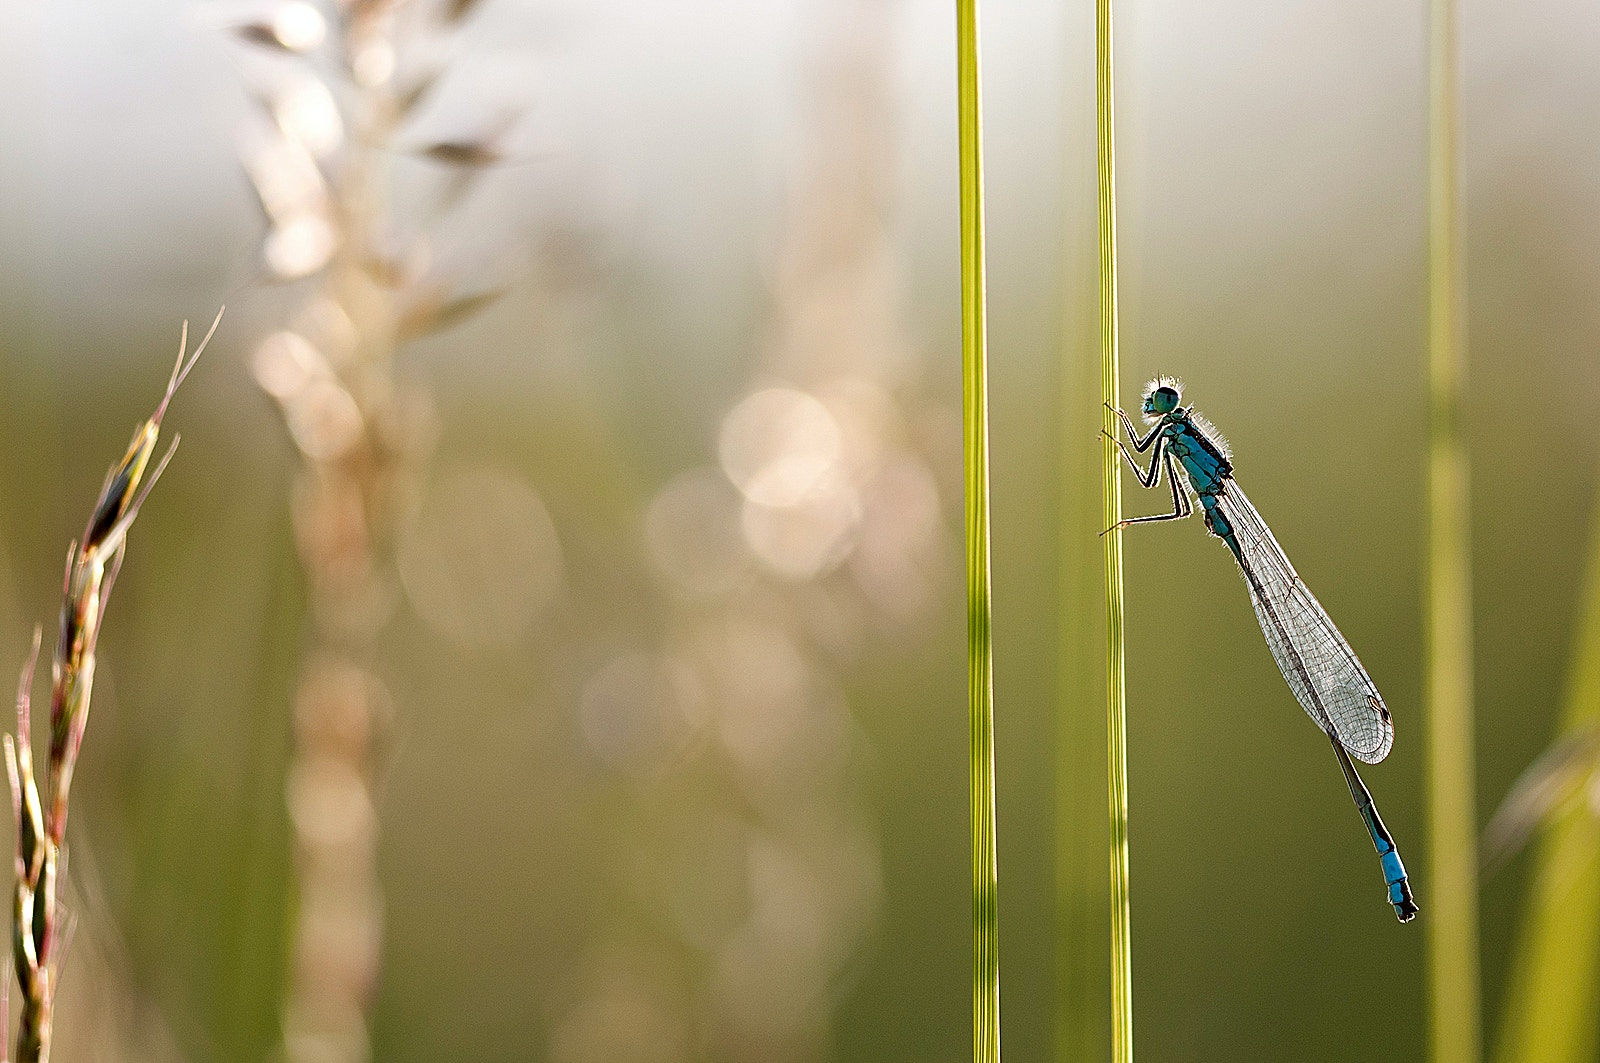 Damselfly wetland SBP Ross Hoddinott